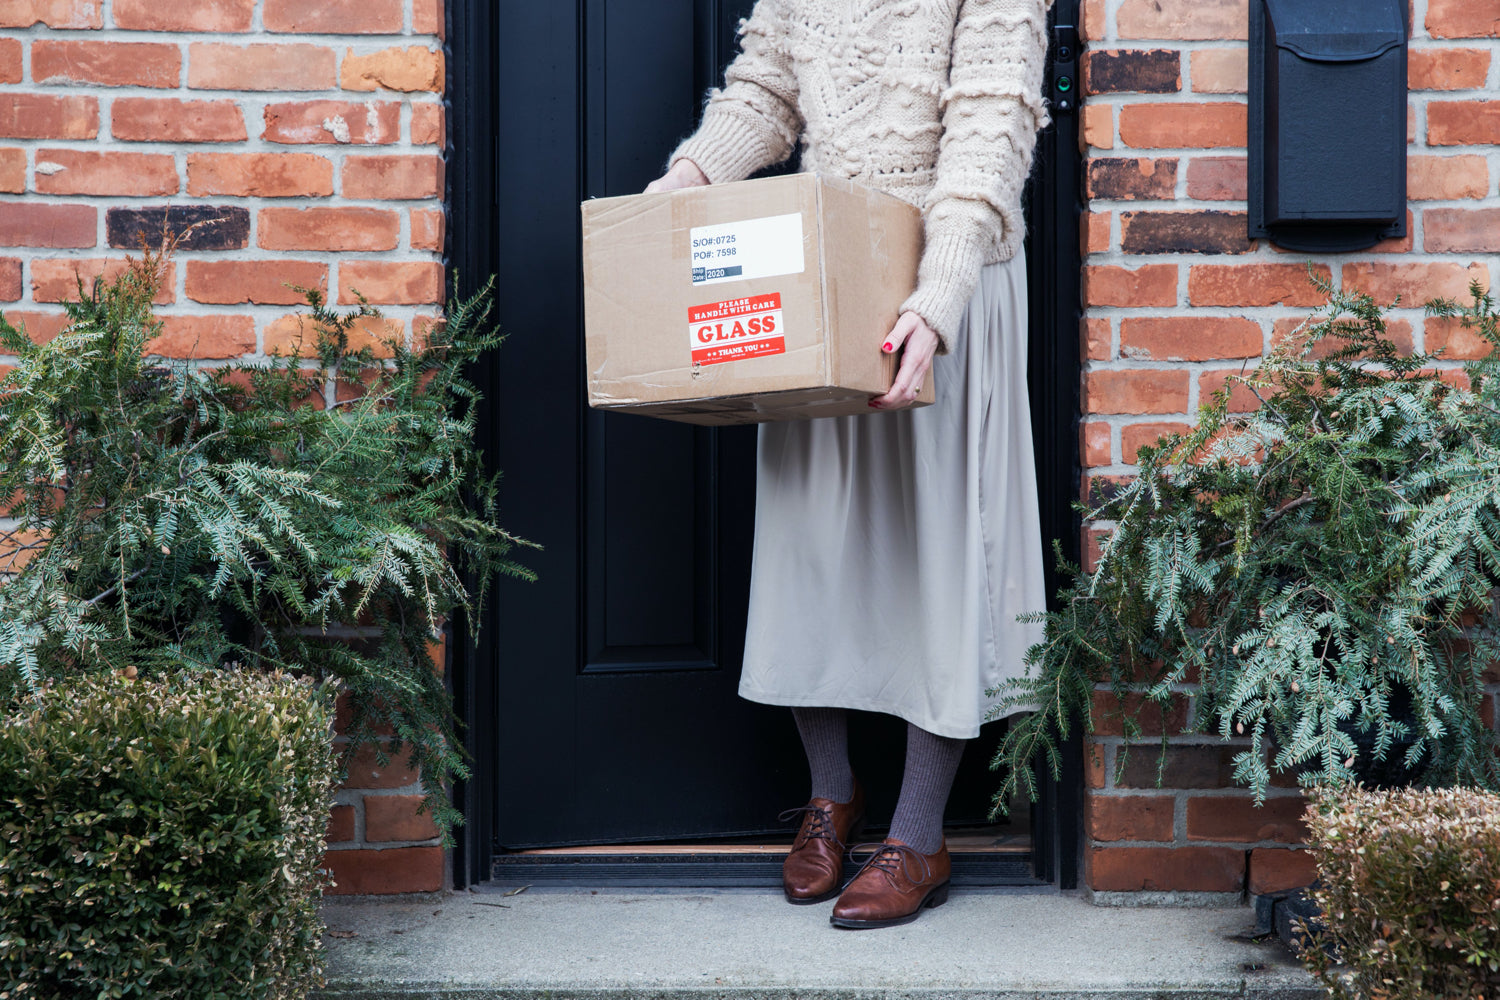 A woman holds a cardboard box on the front step of a brick house